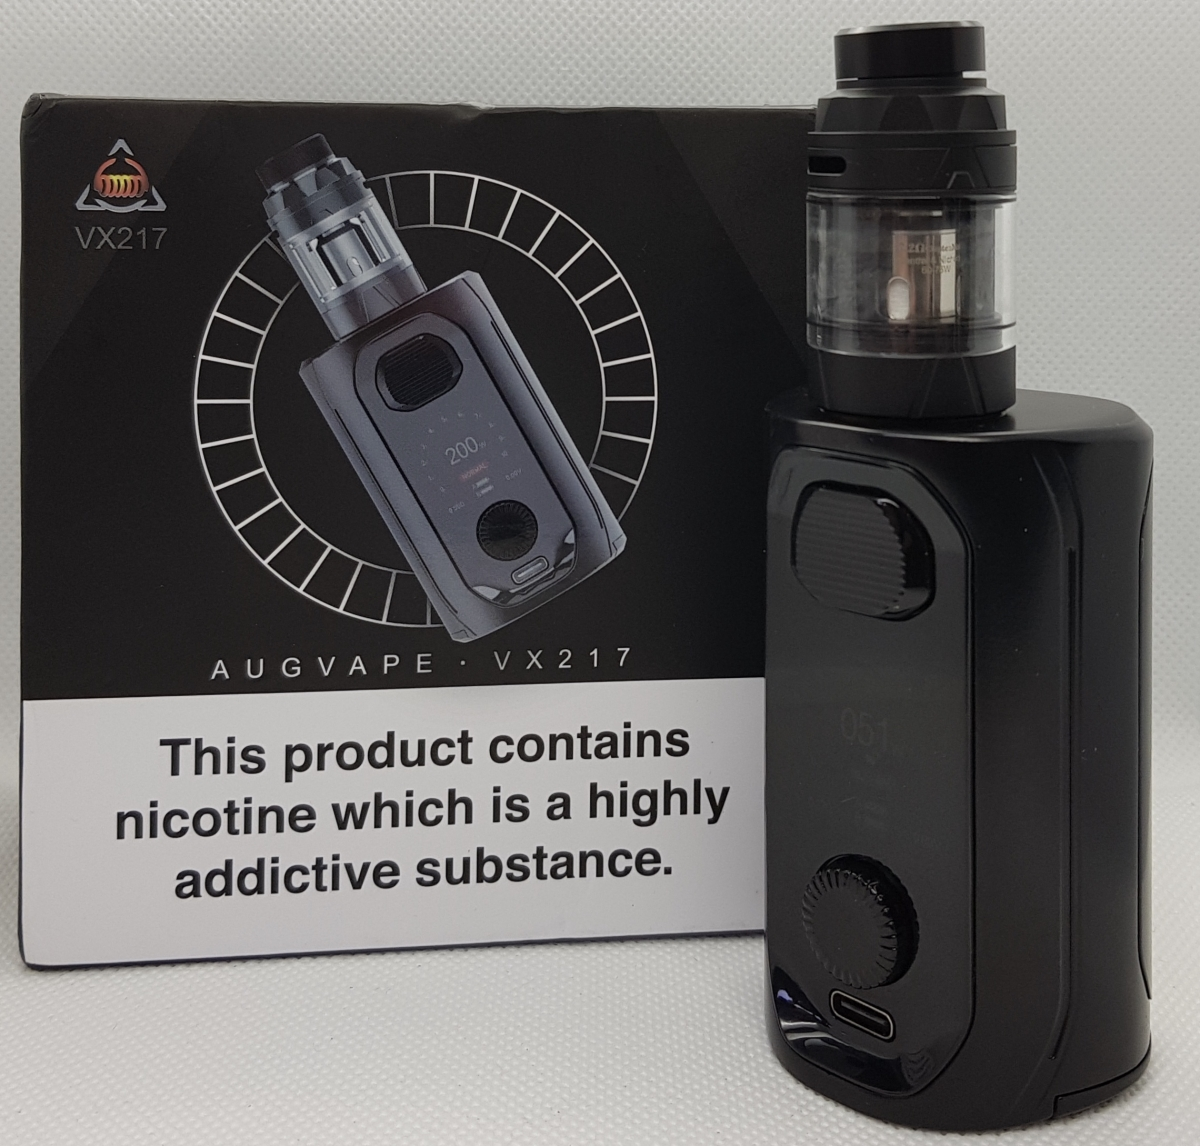 Augvape VX217 Kit close up